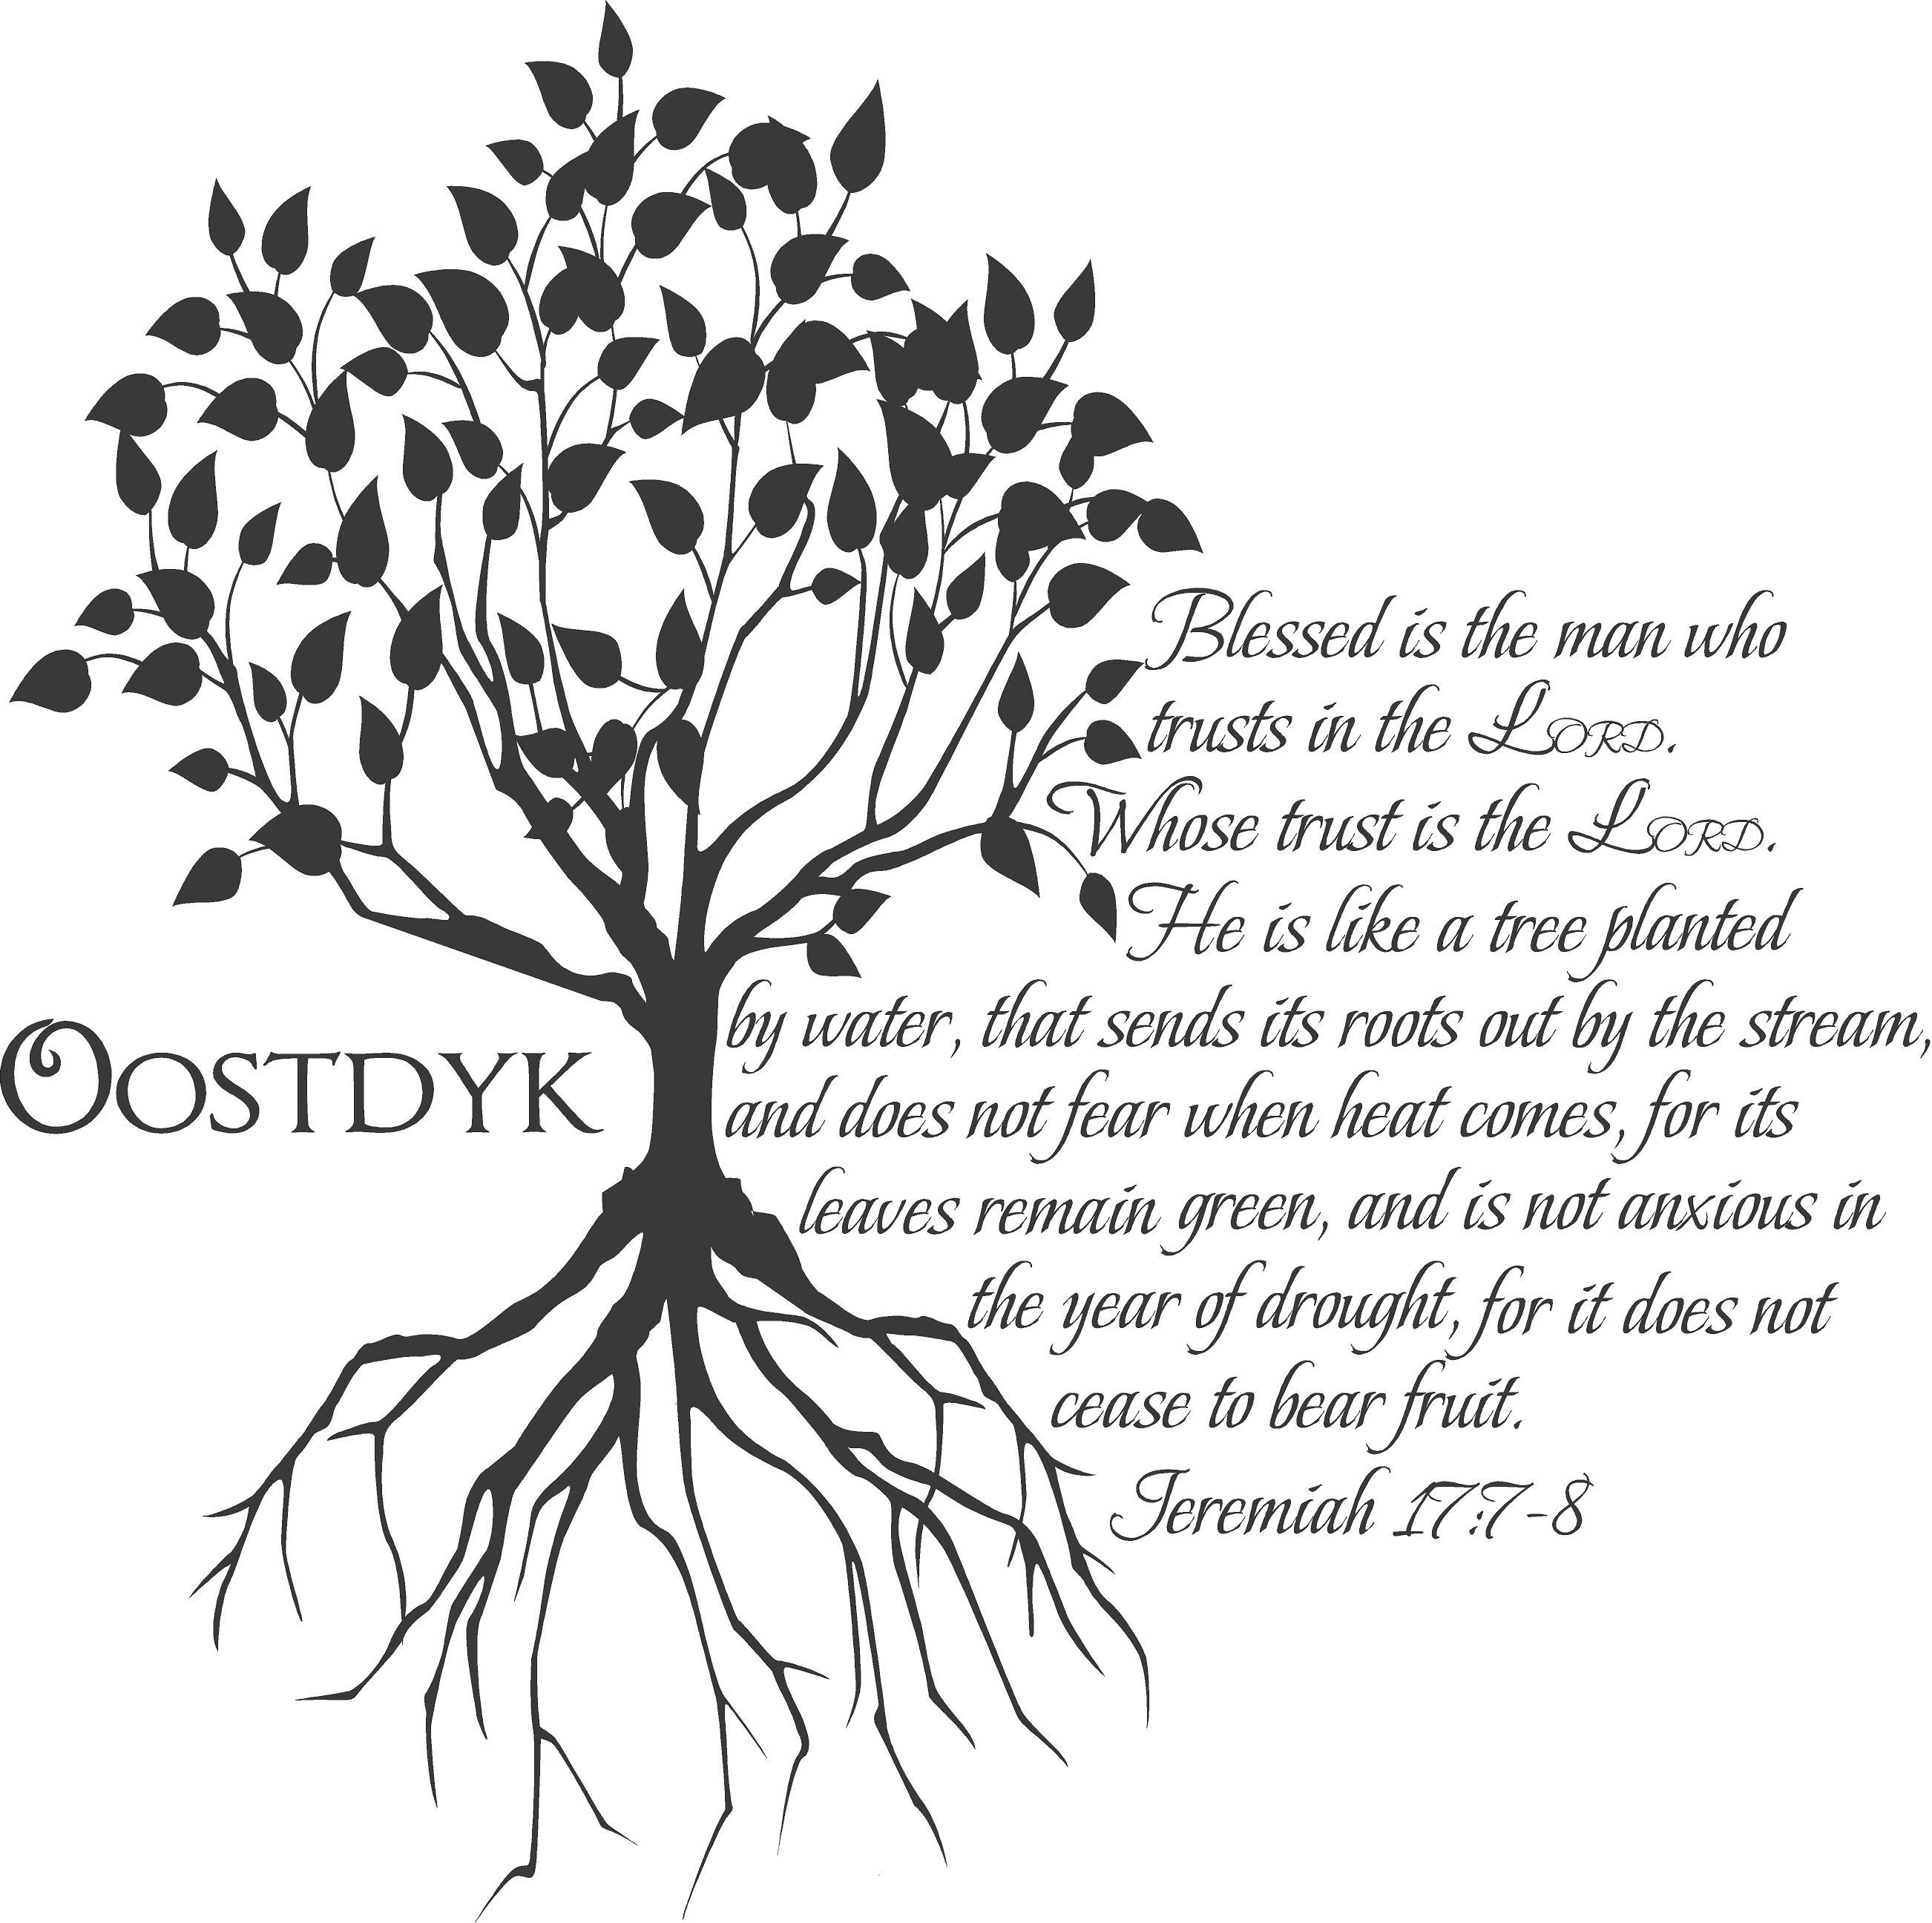 Tree Jeremiah 177 8 Replace Oostdyk With Our Last Name